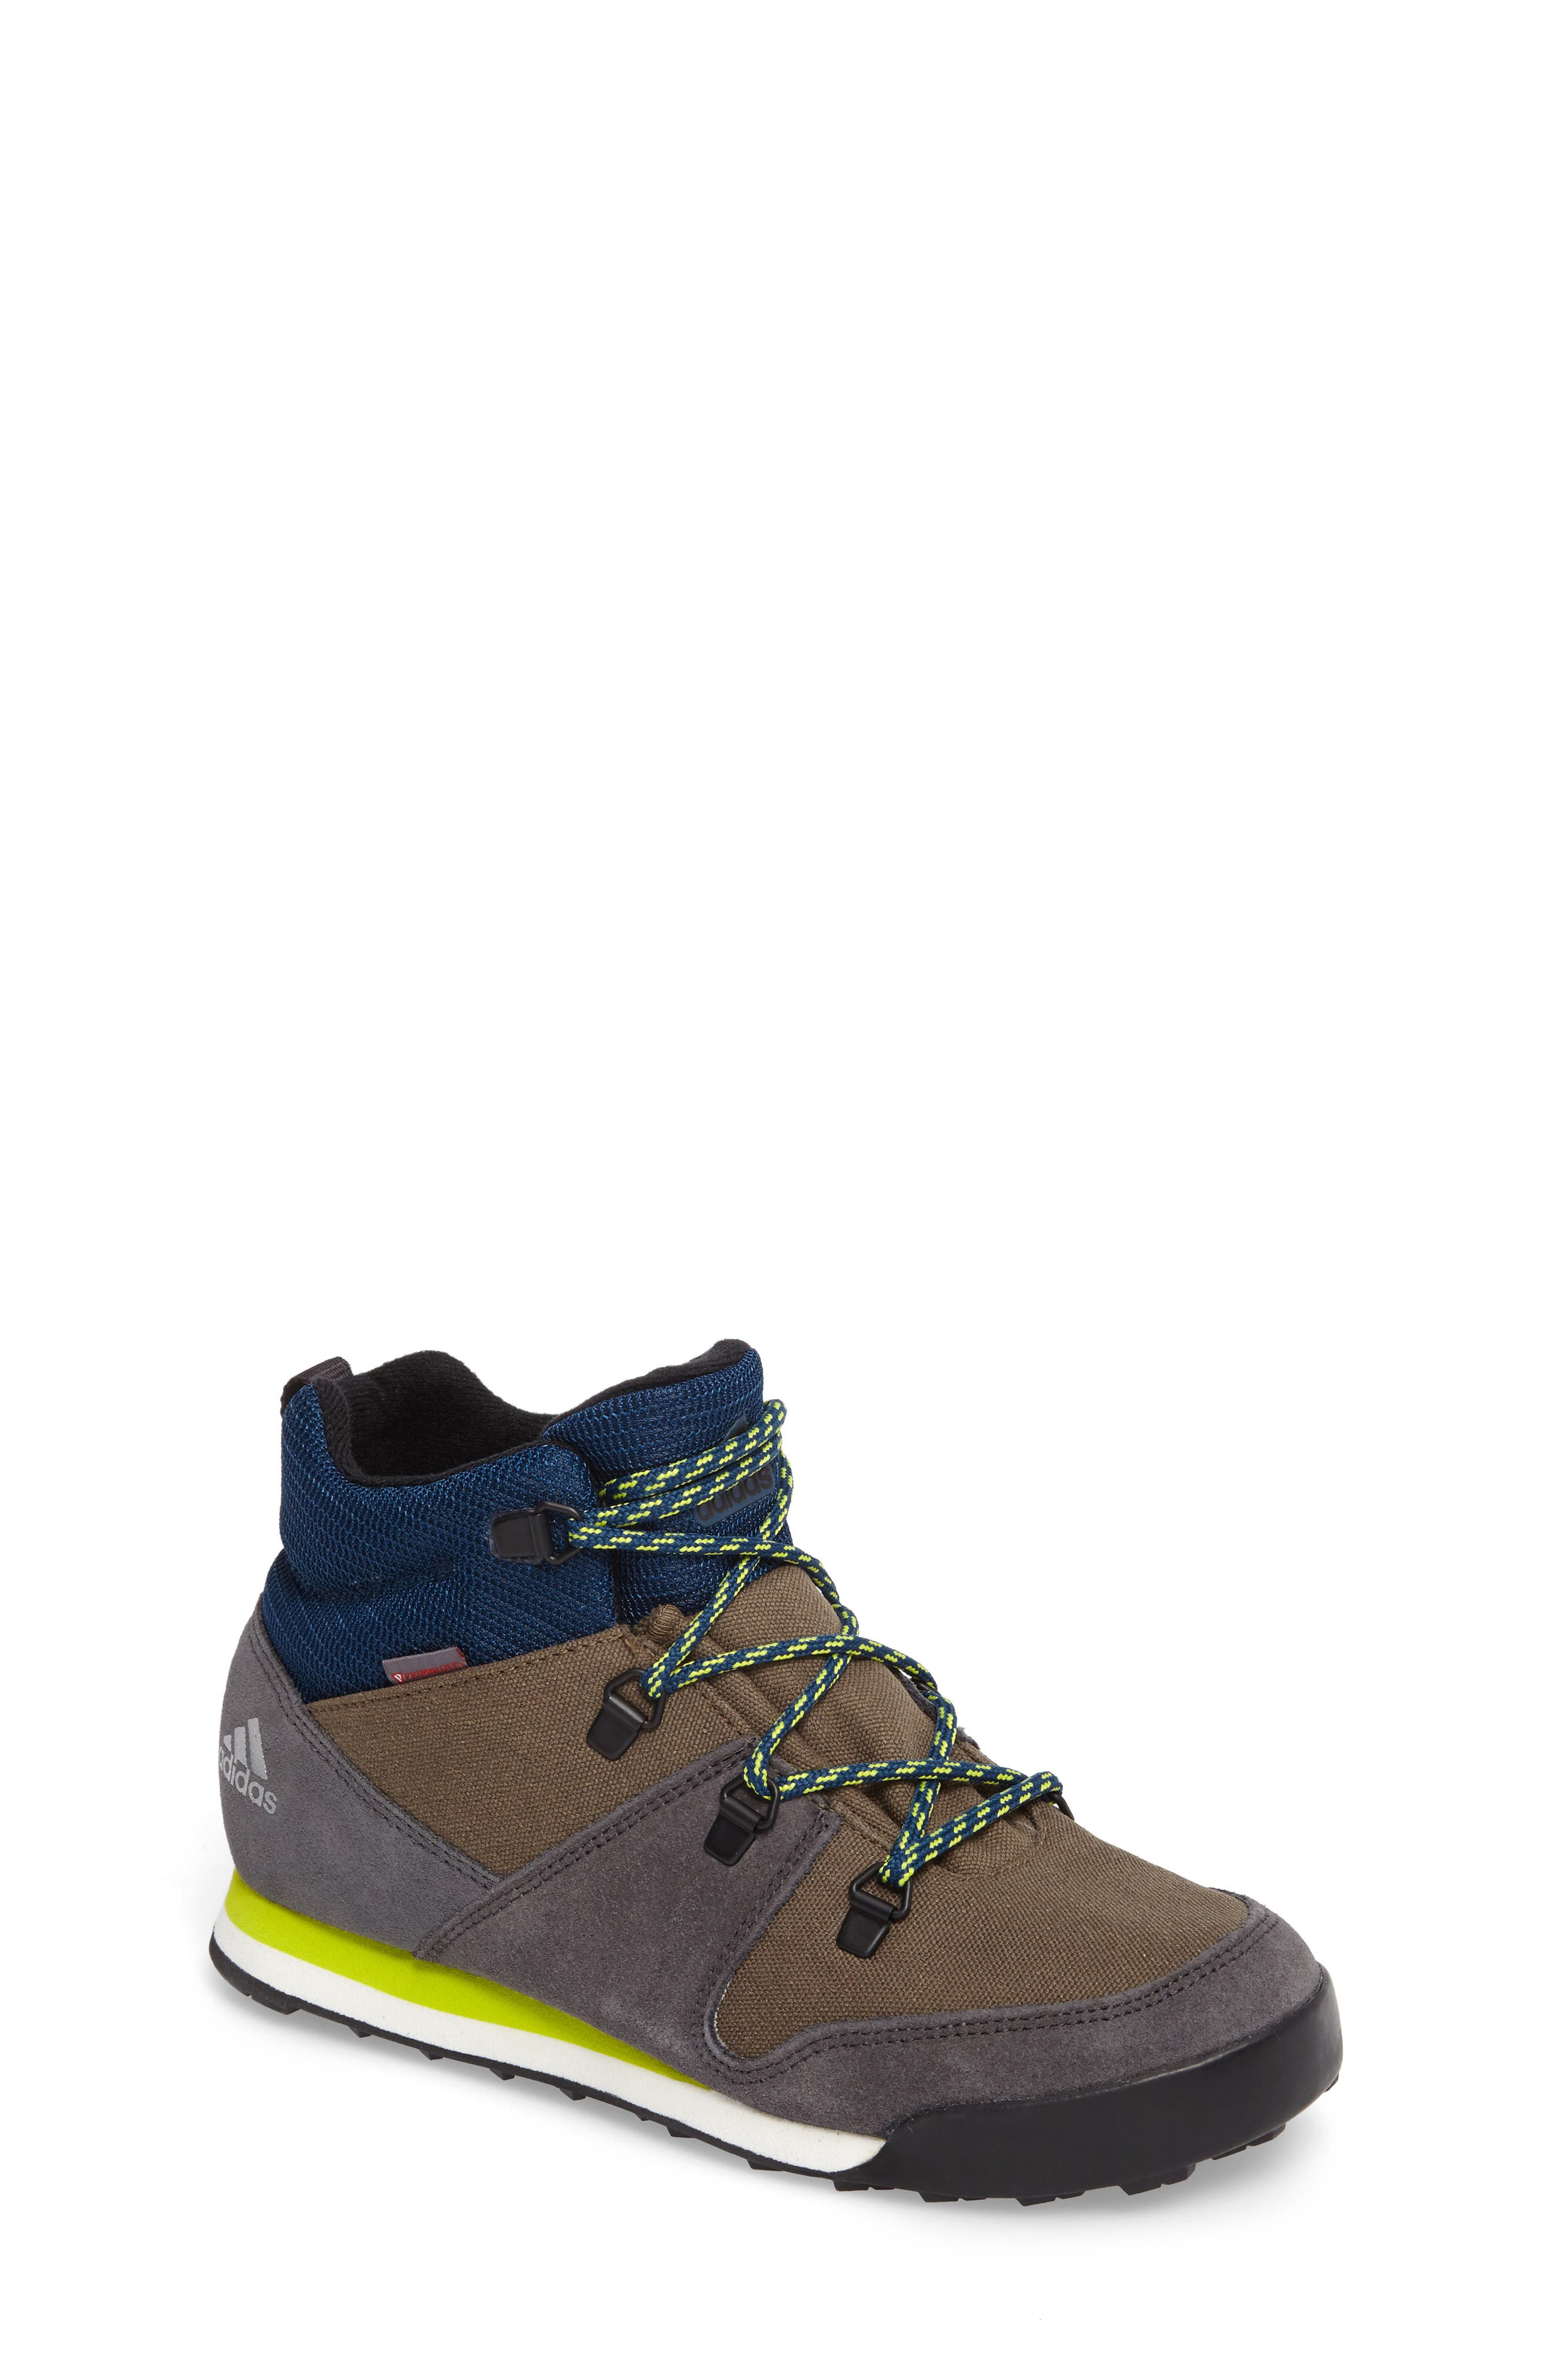 Main Image - adidas Snowpitch Insulated Sneaker Boot (Toddler, Little Kid & Big Kid)